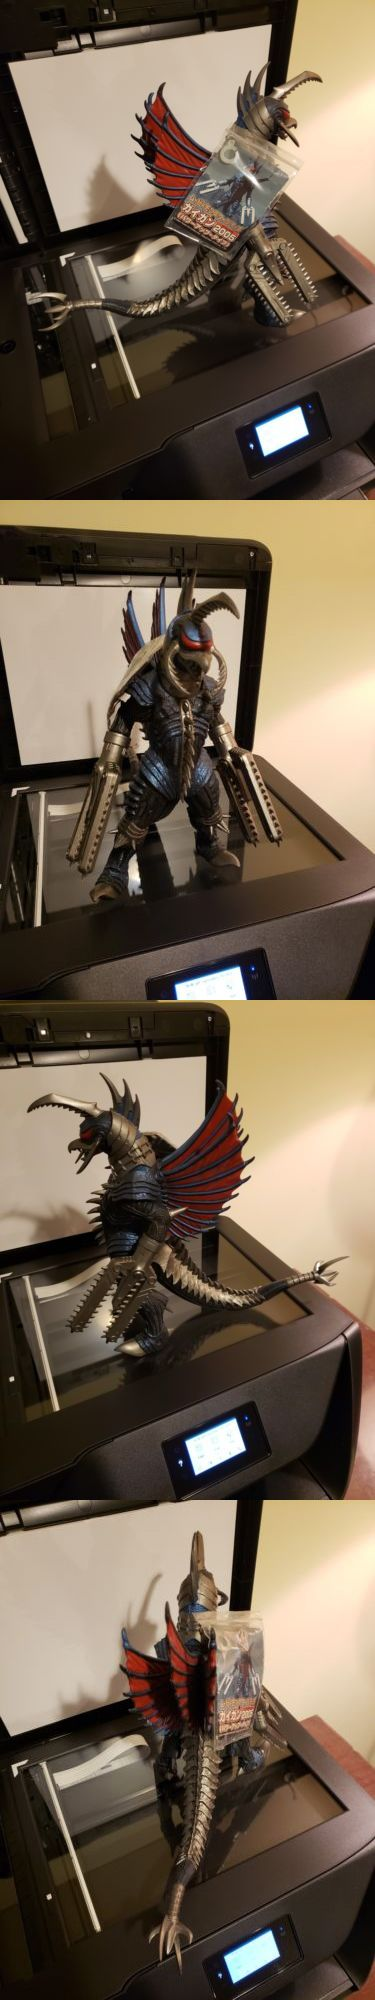 Godzilla 747: Gigan W Chainsaw Bandai Final Wars 2004 With ...